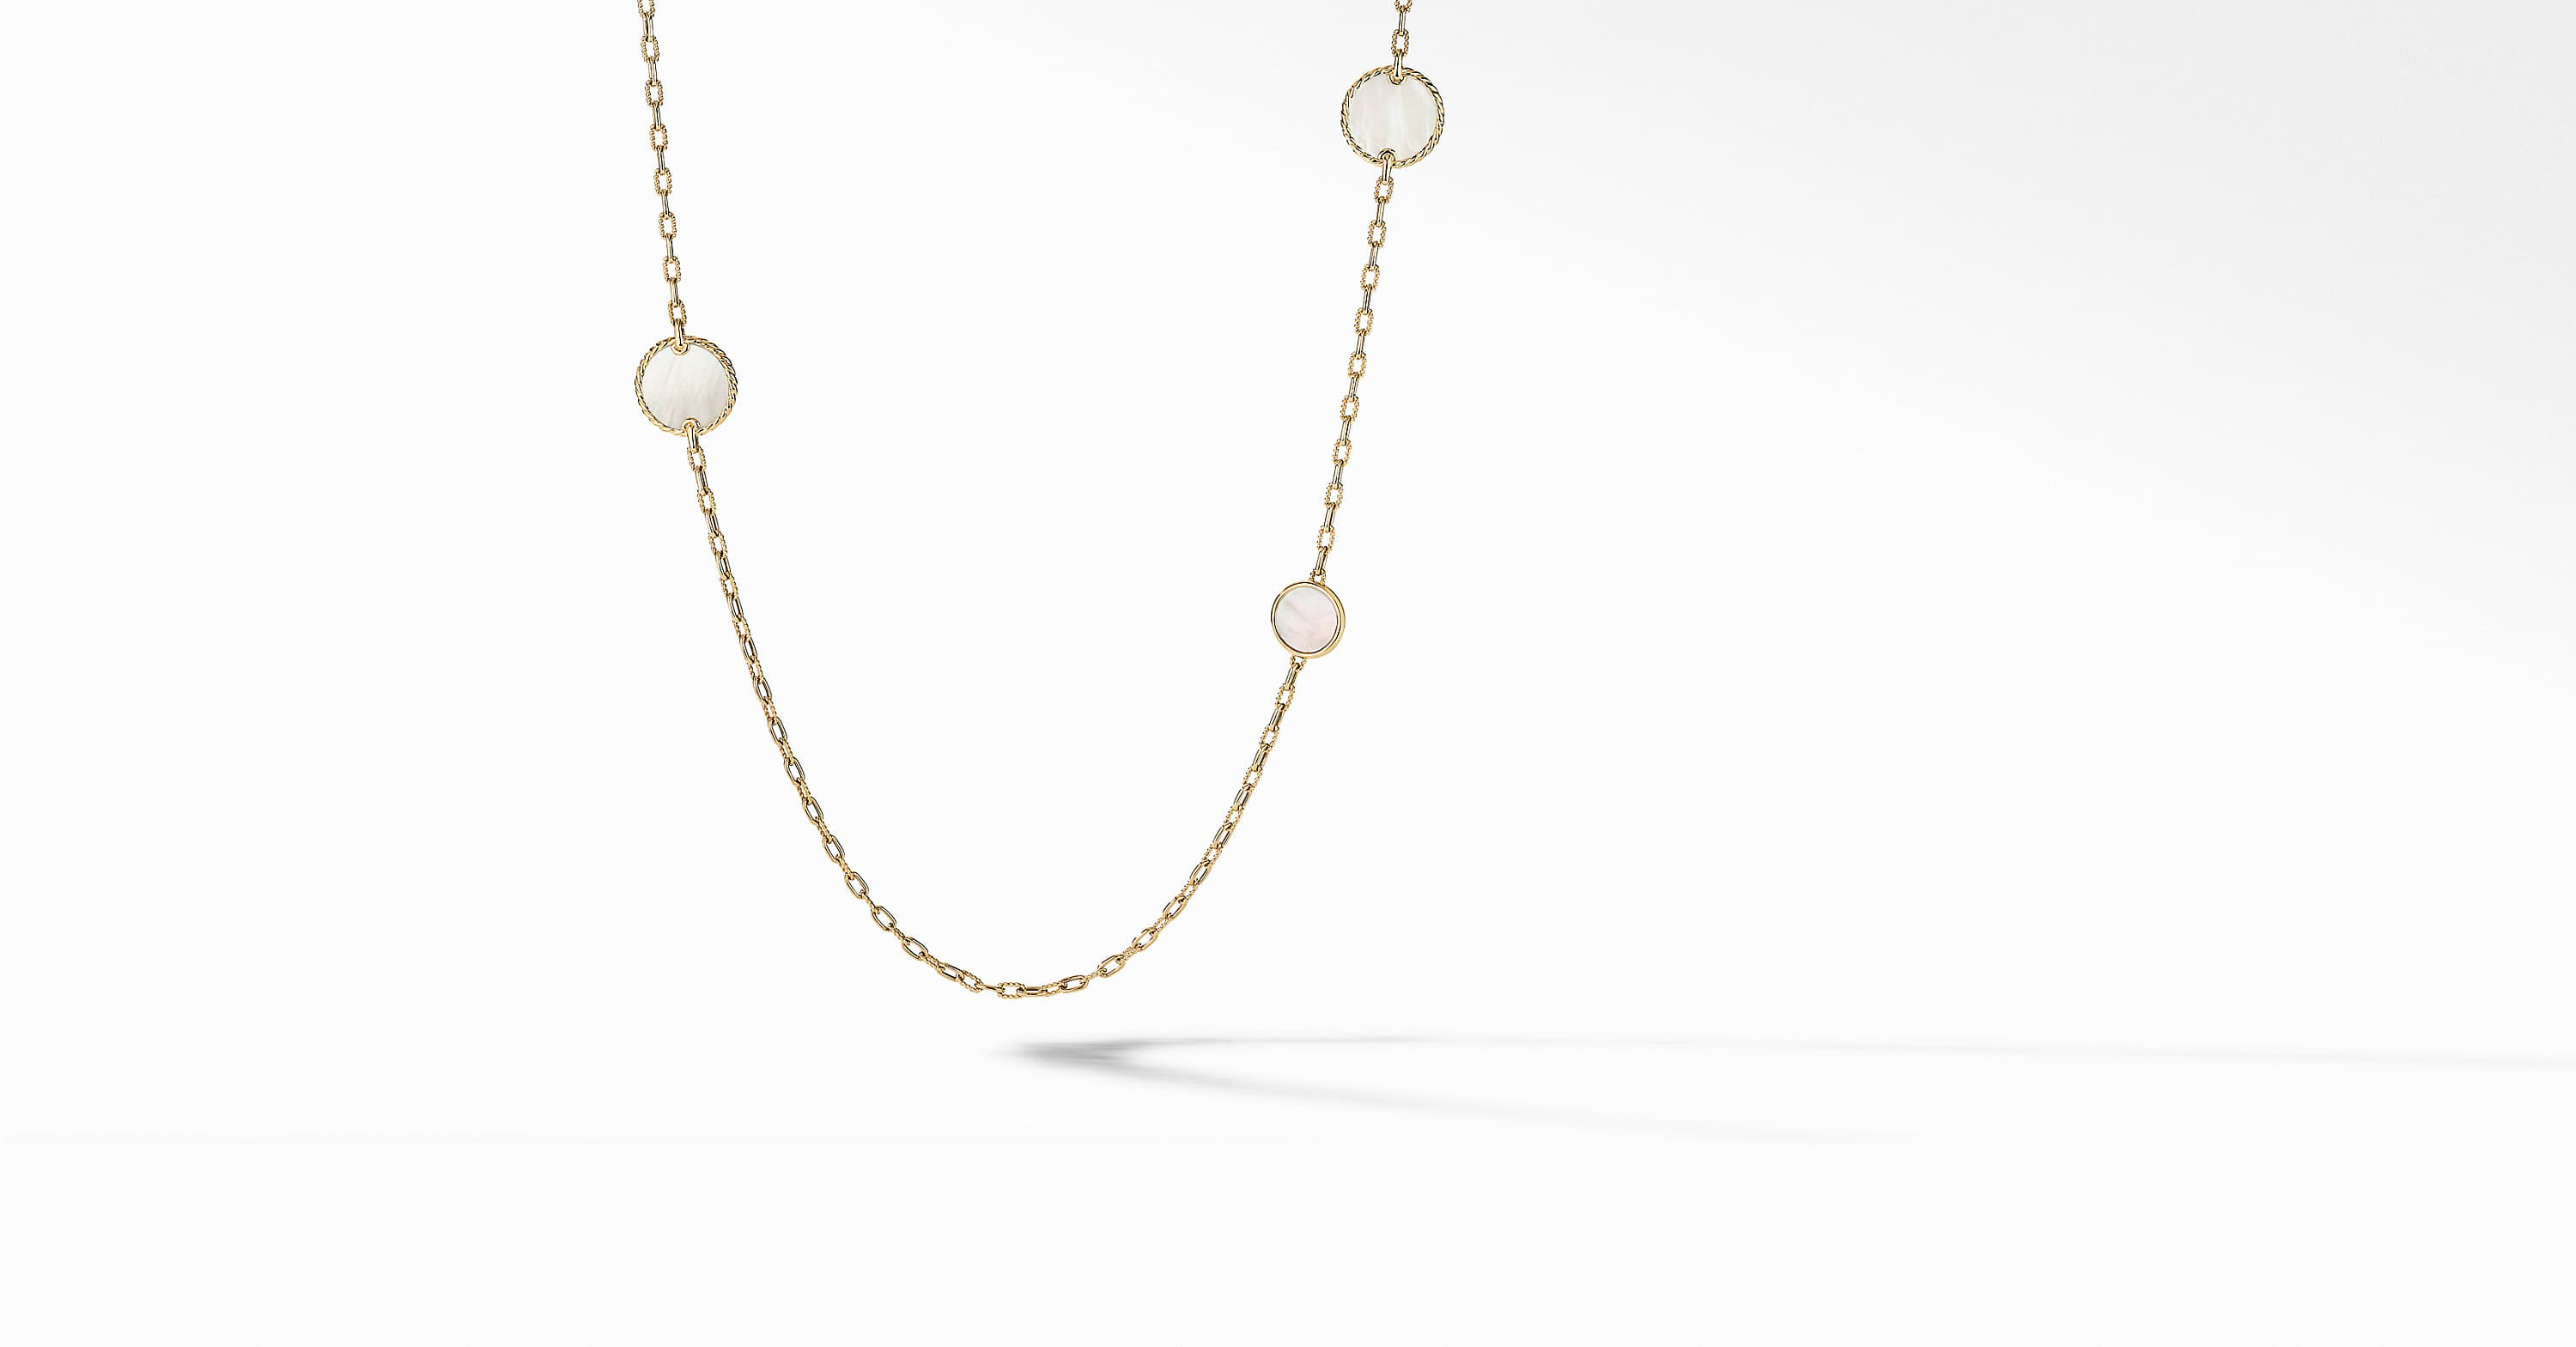 DY Elements Station Necklace in 18K Yellow Gold